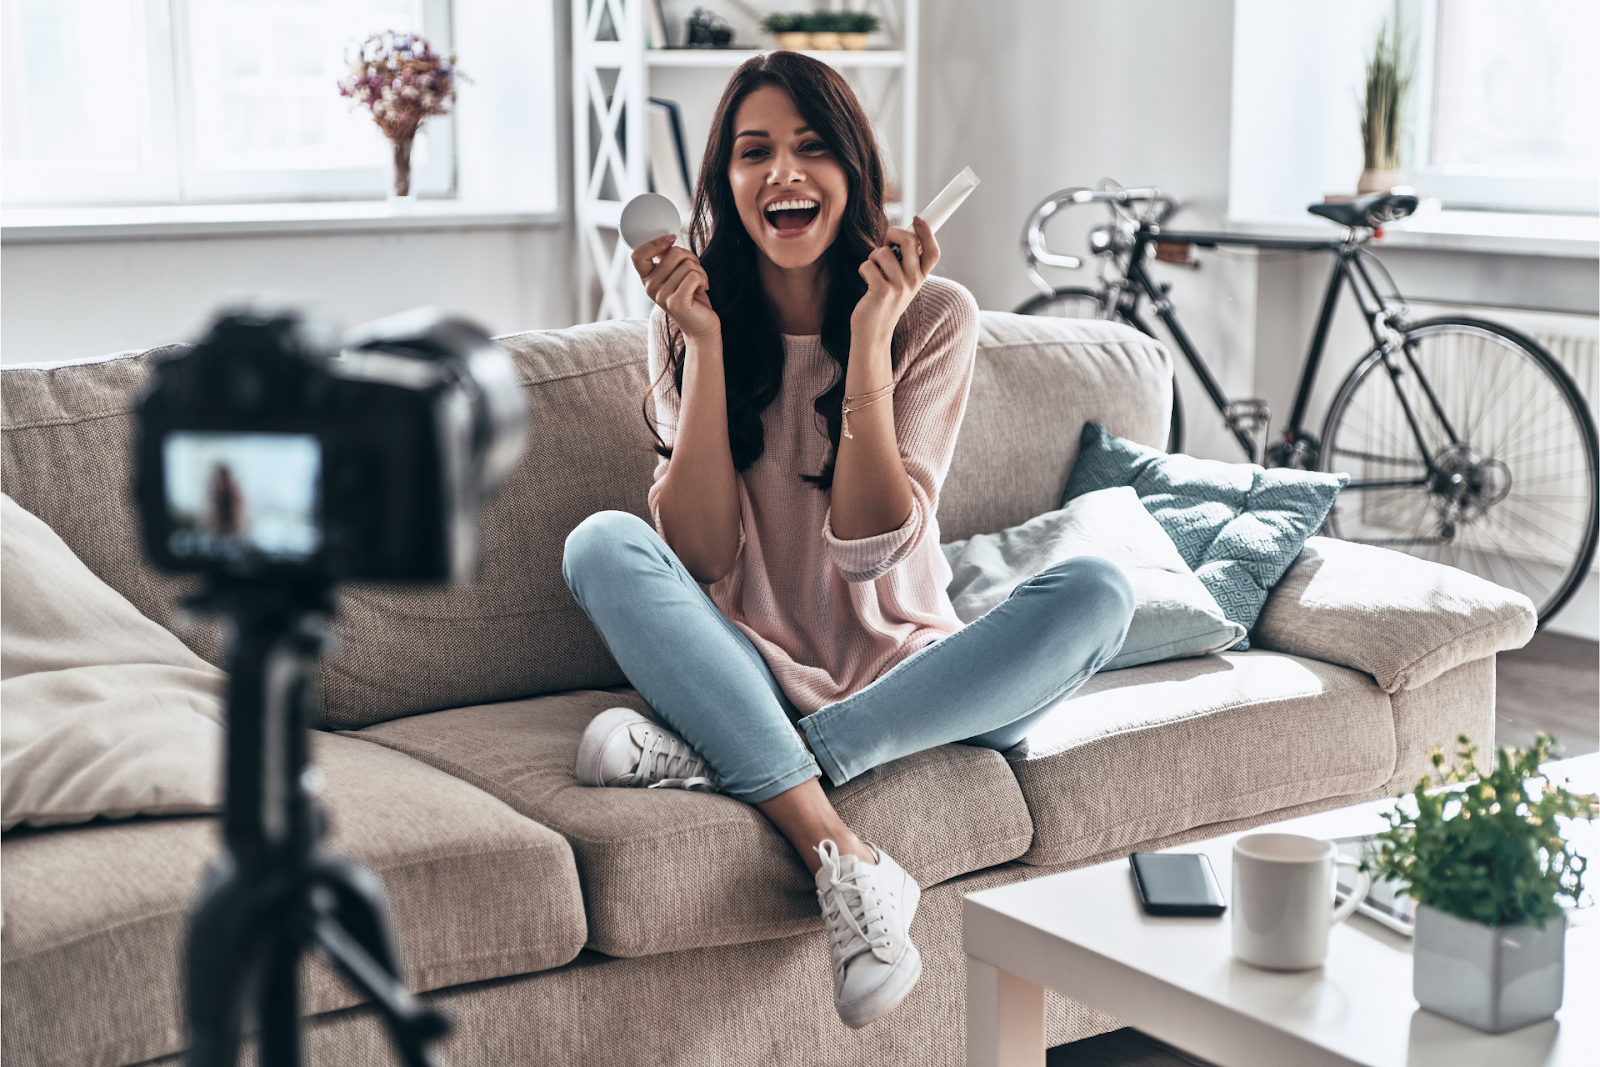 An influencer films a video in her home